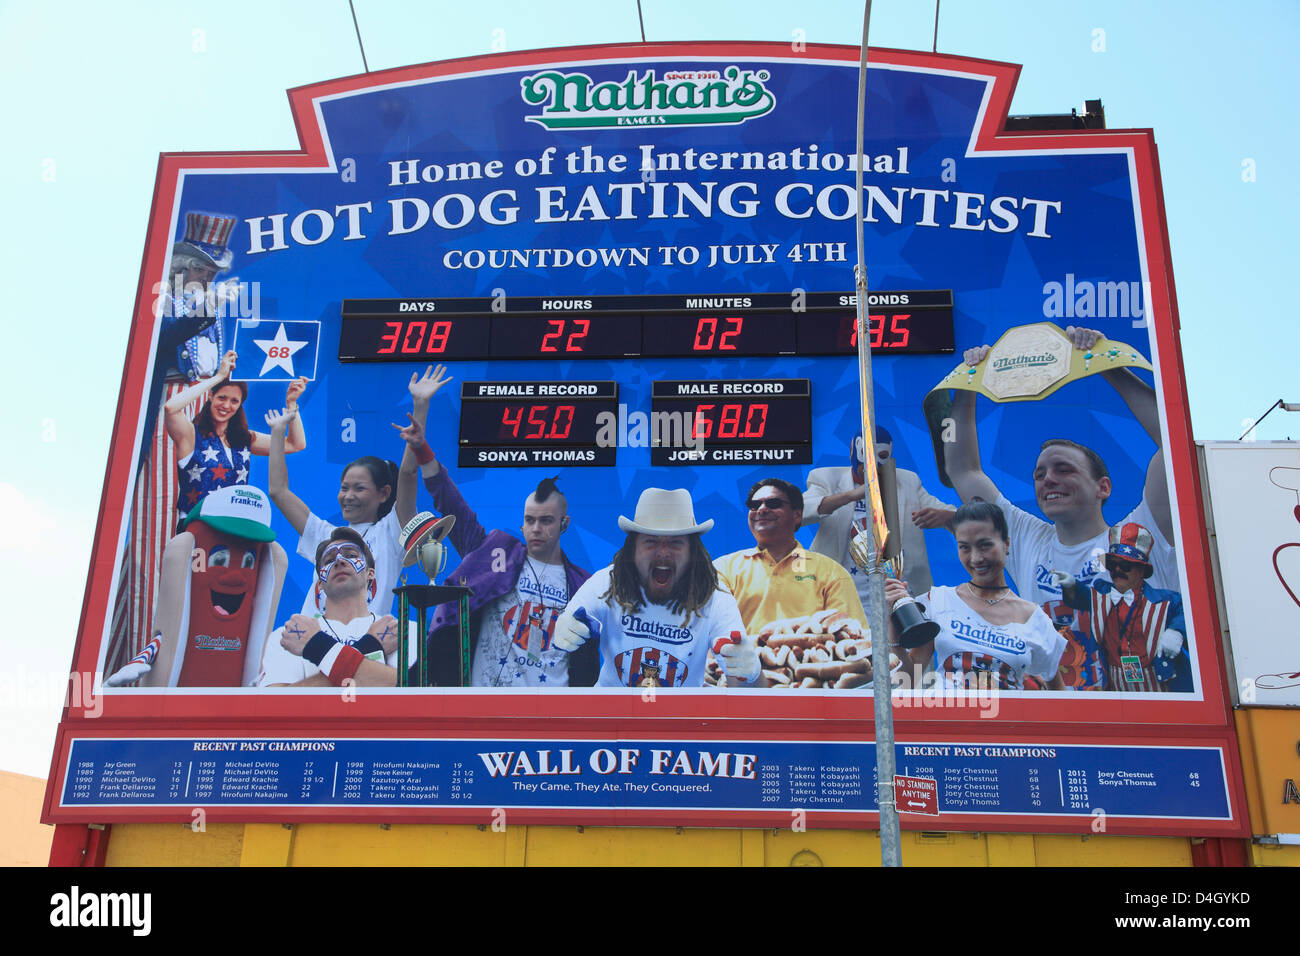 Hot Dog Eating Contest, Wall of Fame, Nathans Famous Hot Dogs, Coney Island, Brooklyn, New York City, USA - Stock Image